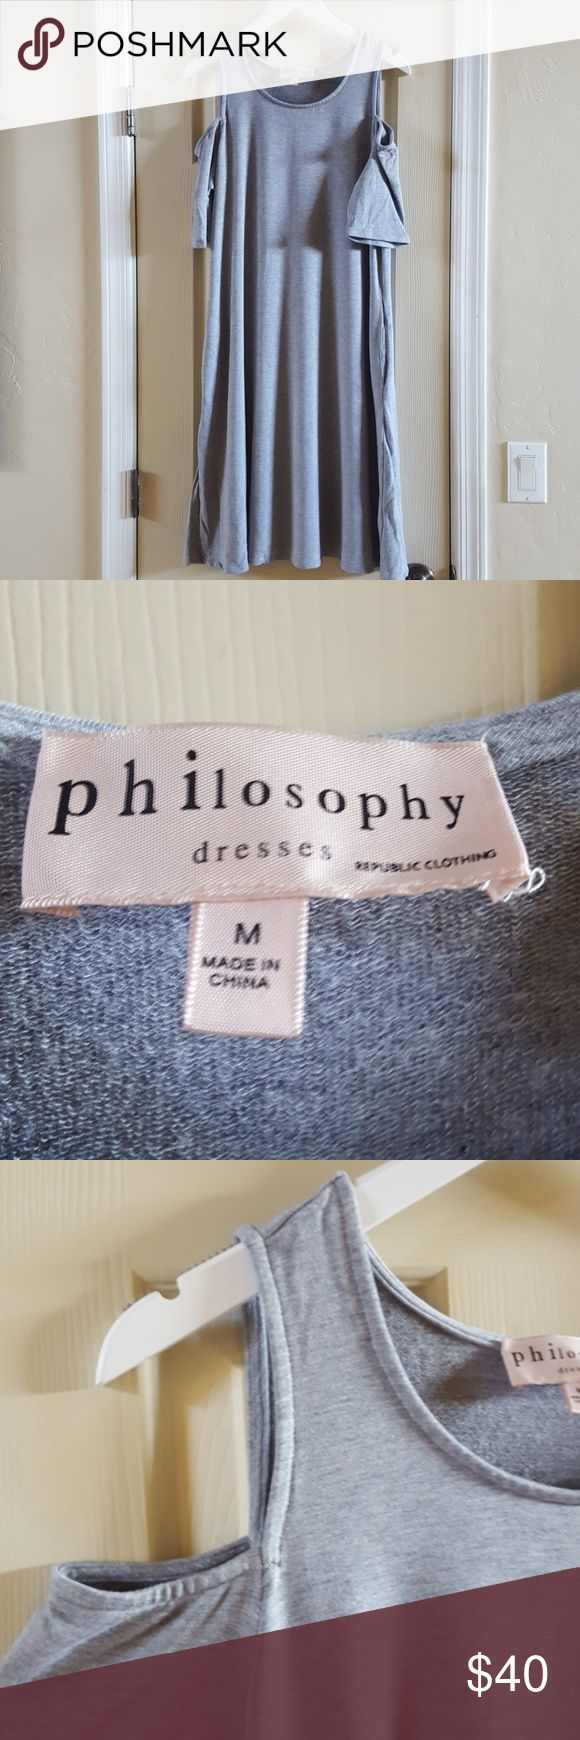 Philosophy Dress Worn Once Cold Shoulder Philosophy dress with pockets. Super comfy. 95% Rayon and 5% Spandex, machine washable. In great condition with no stains, snags, or holes. Philosophy Dresses